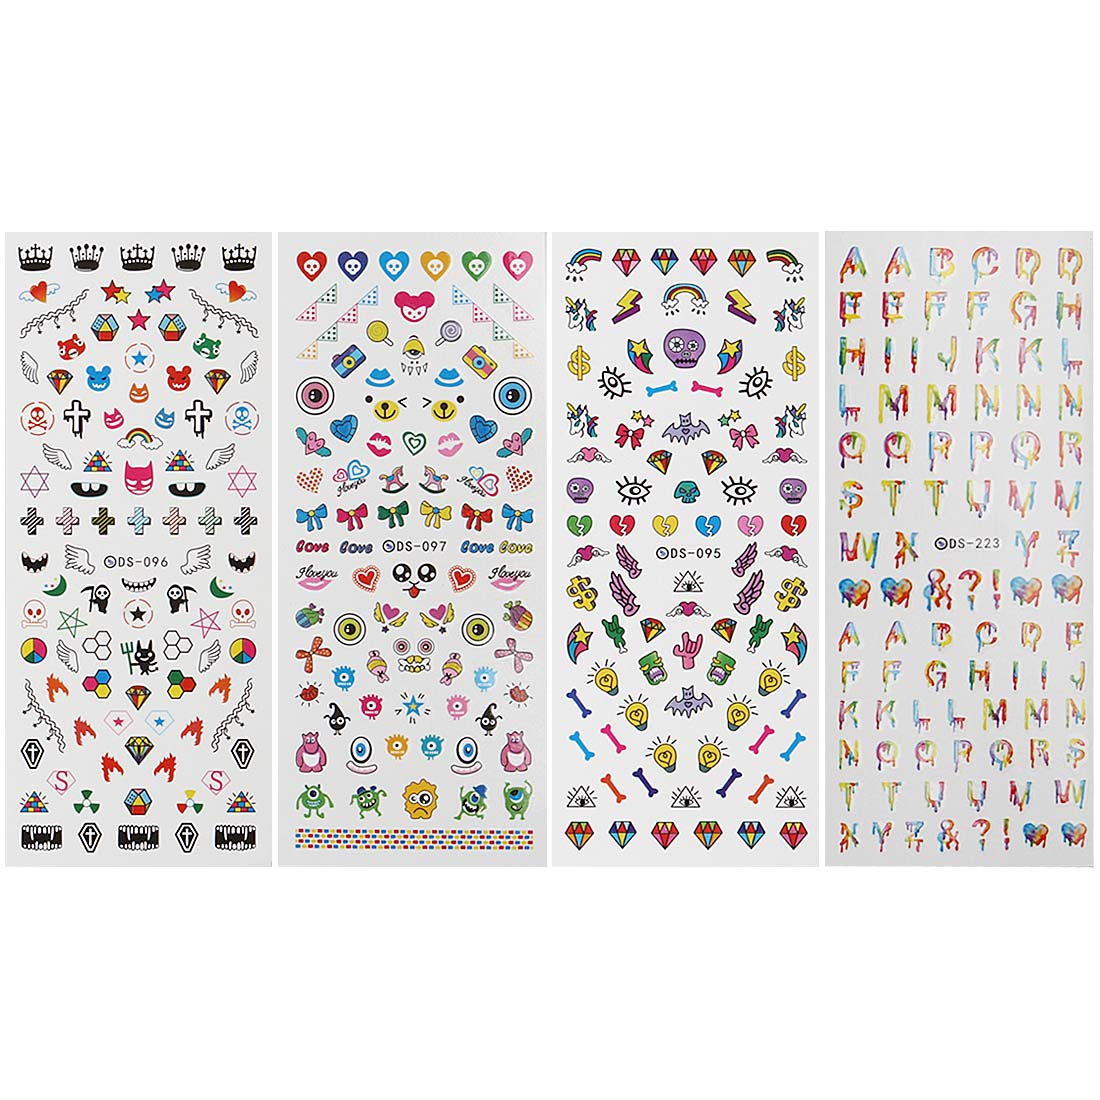 Maniology (formerly bmc) 4 Sheet EDM Festival Themed Water Transfer Nail Art Decal Set - Musik City